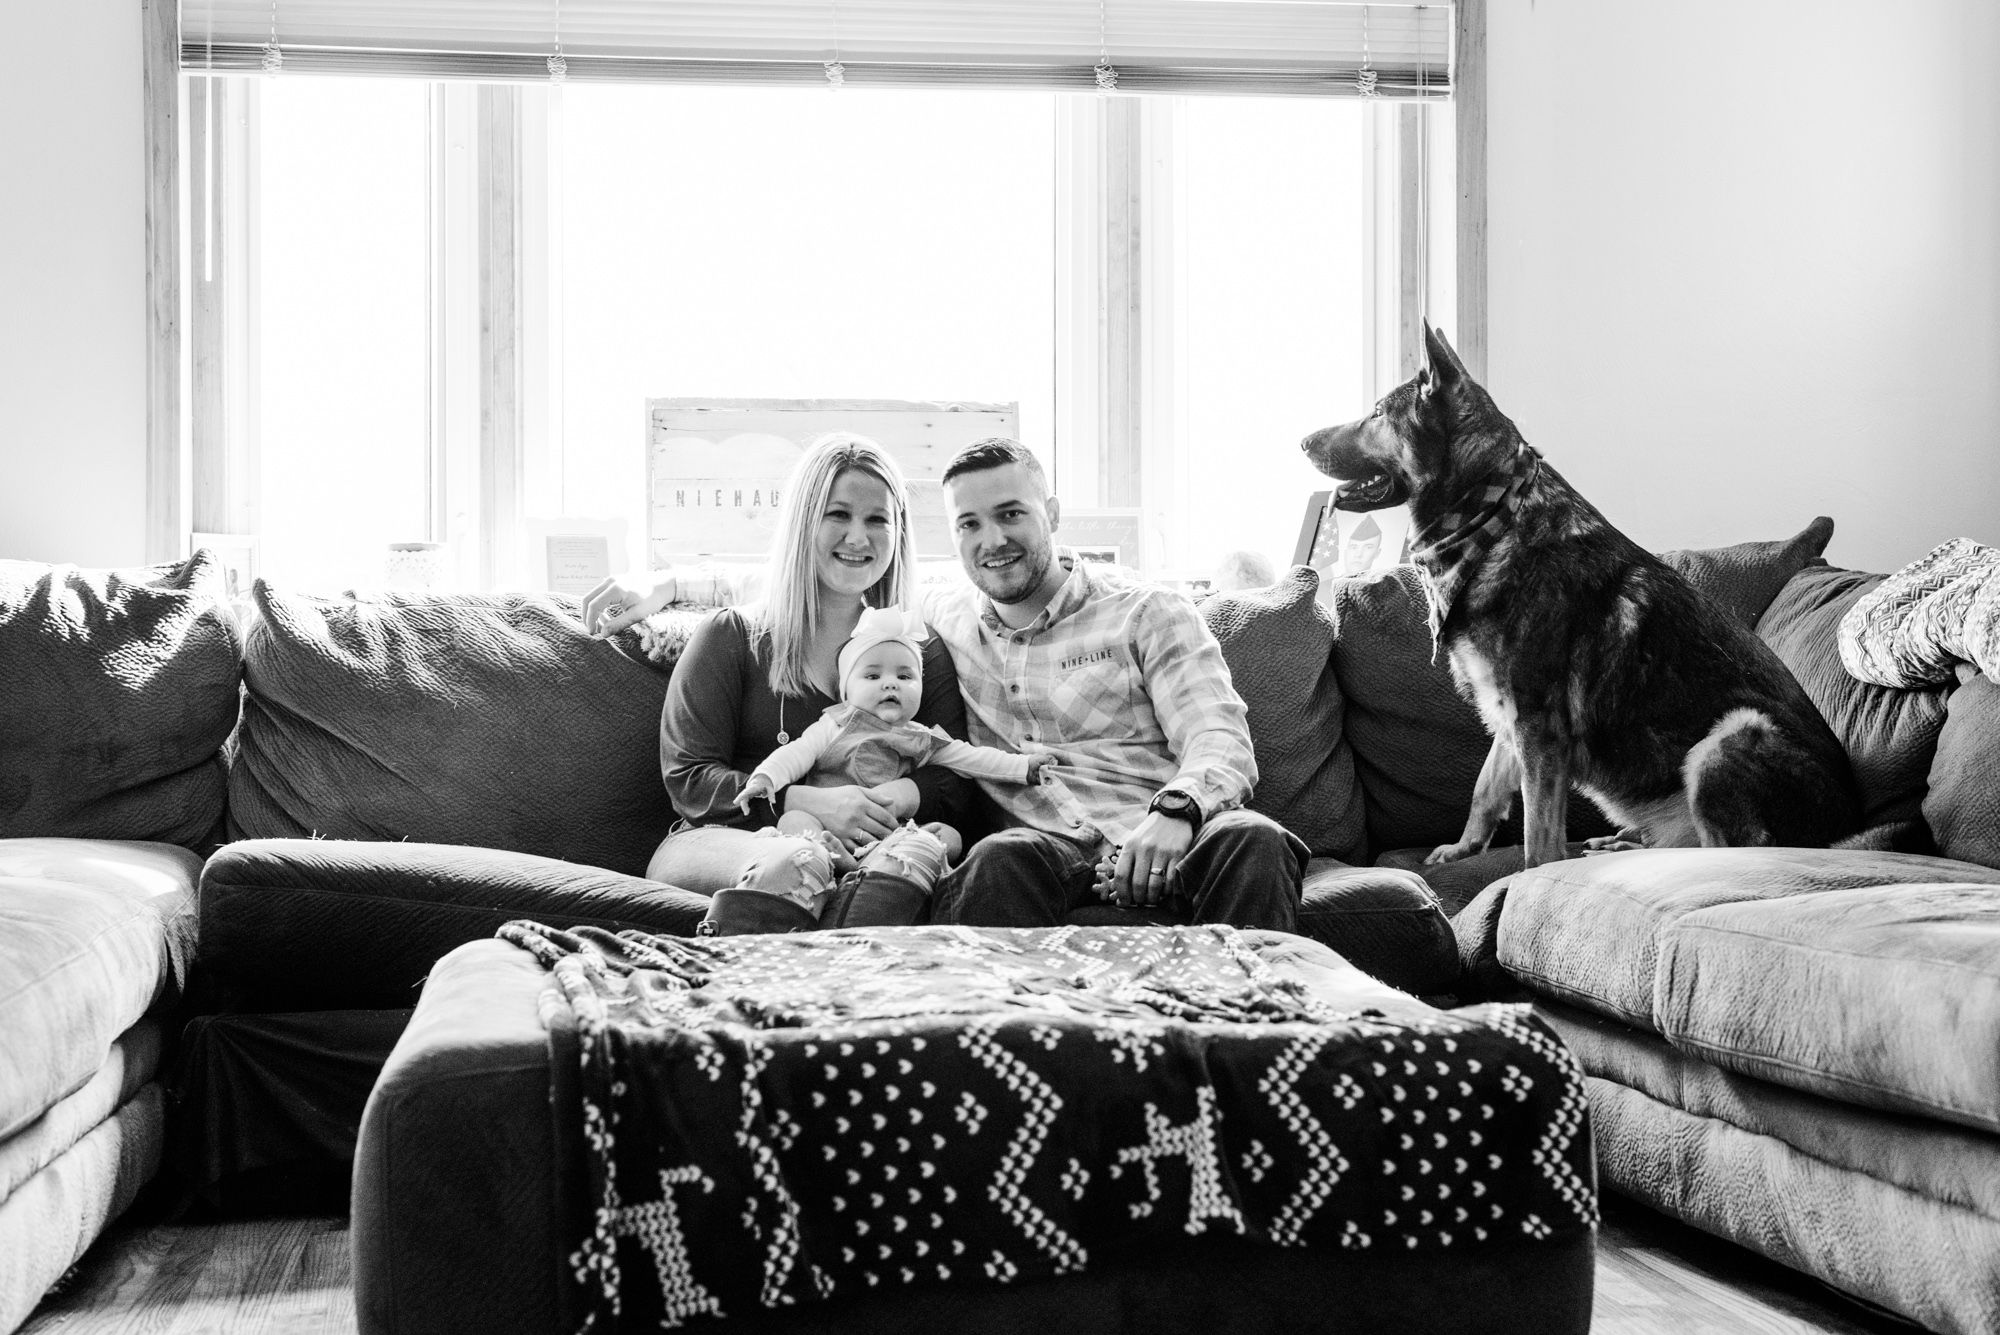 Lifestyle family photoshoot in the home with mom, dad, baby, and dog sitting on couch in Gibsonia, Pennsylvania